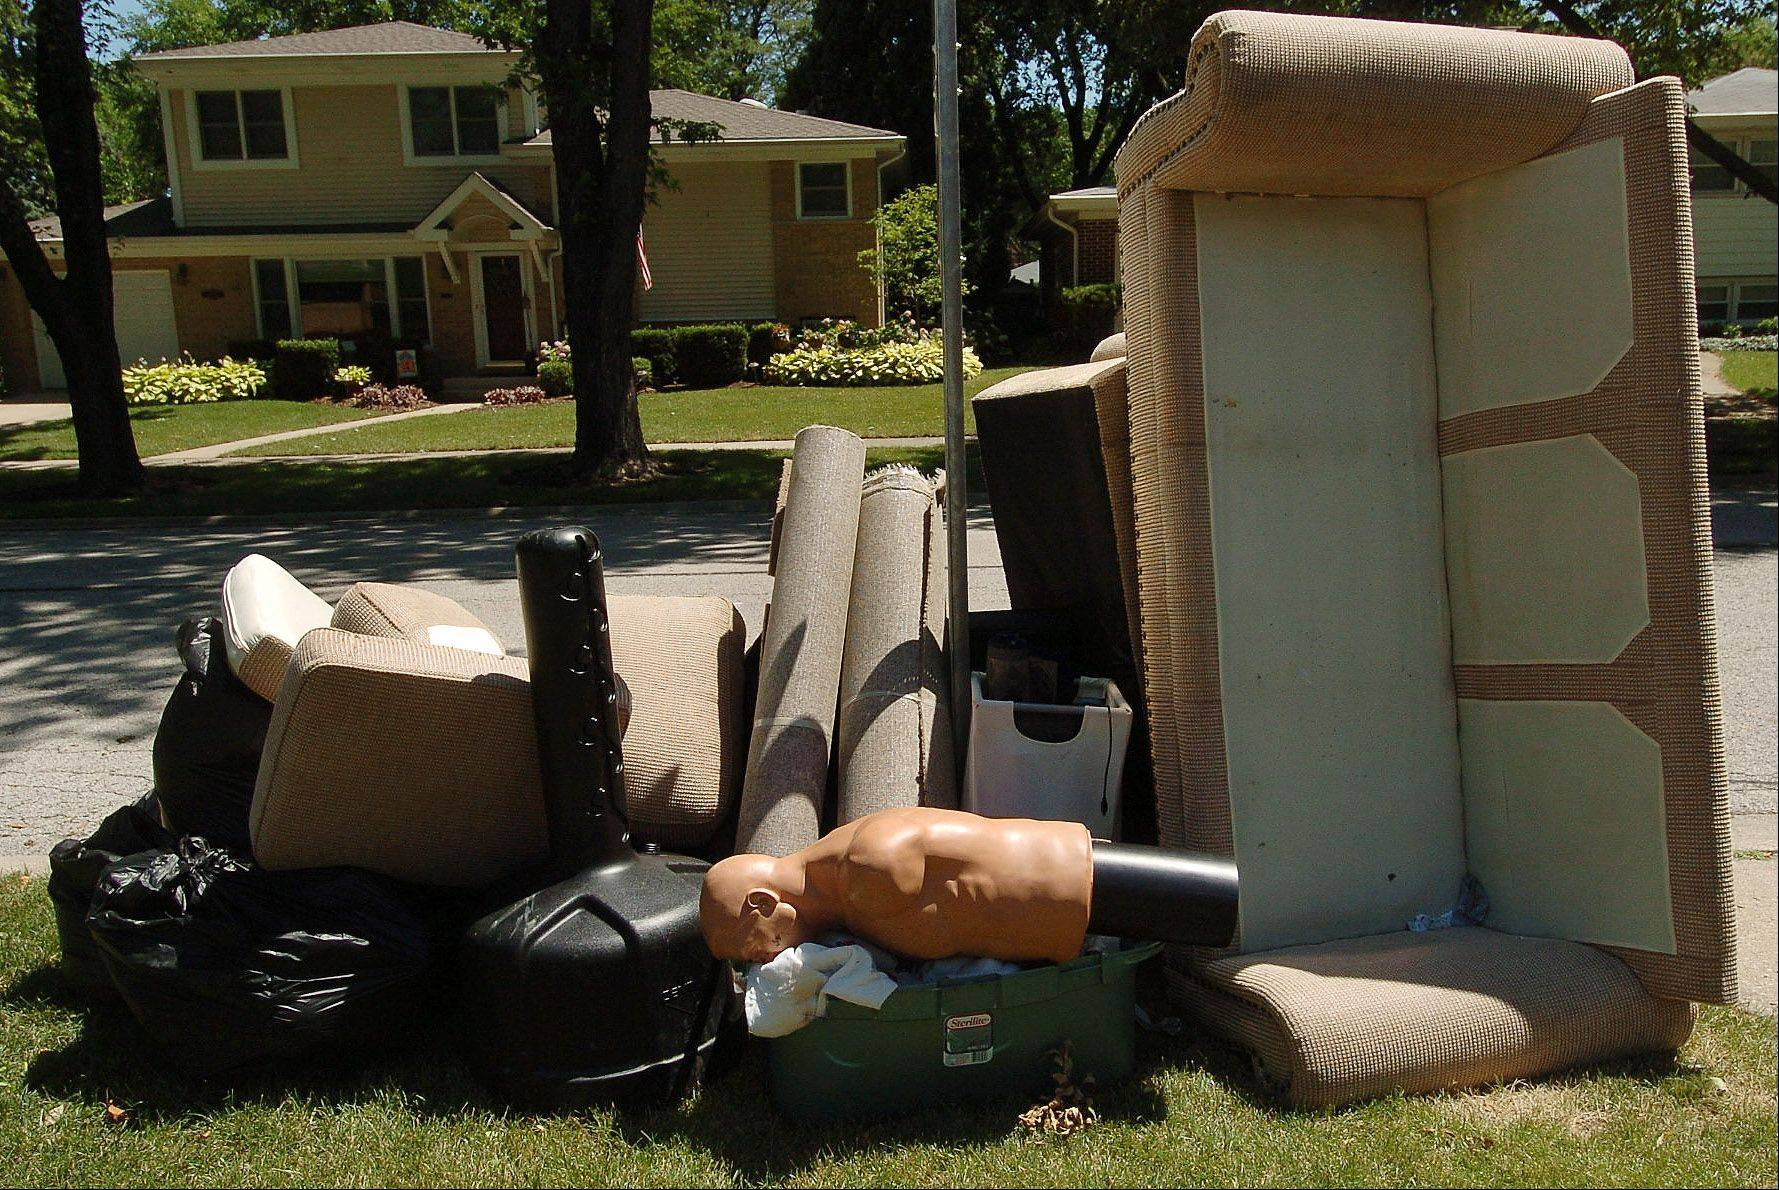 Furniture and other basement belongings damaged by floods were a common sight outside Mount Prospect homes after last month�s record rains. Now village officials are hiring an engineering firm to visit damaged homes and help determine how to reduce or prevent flooding in the future.